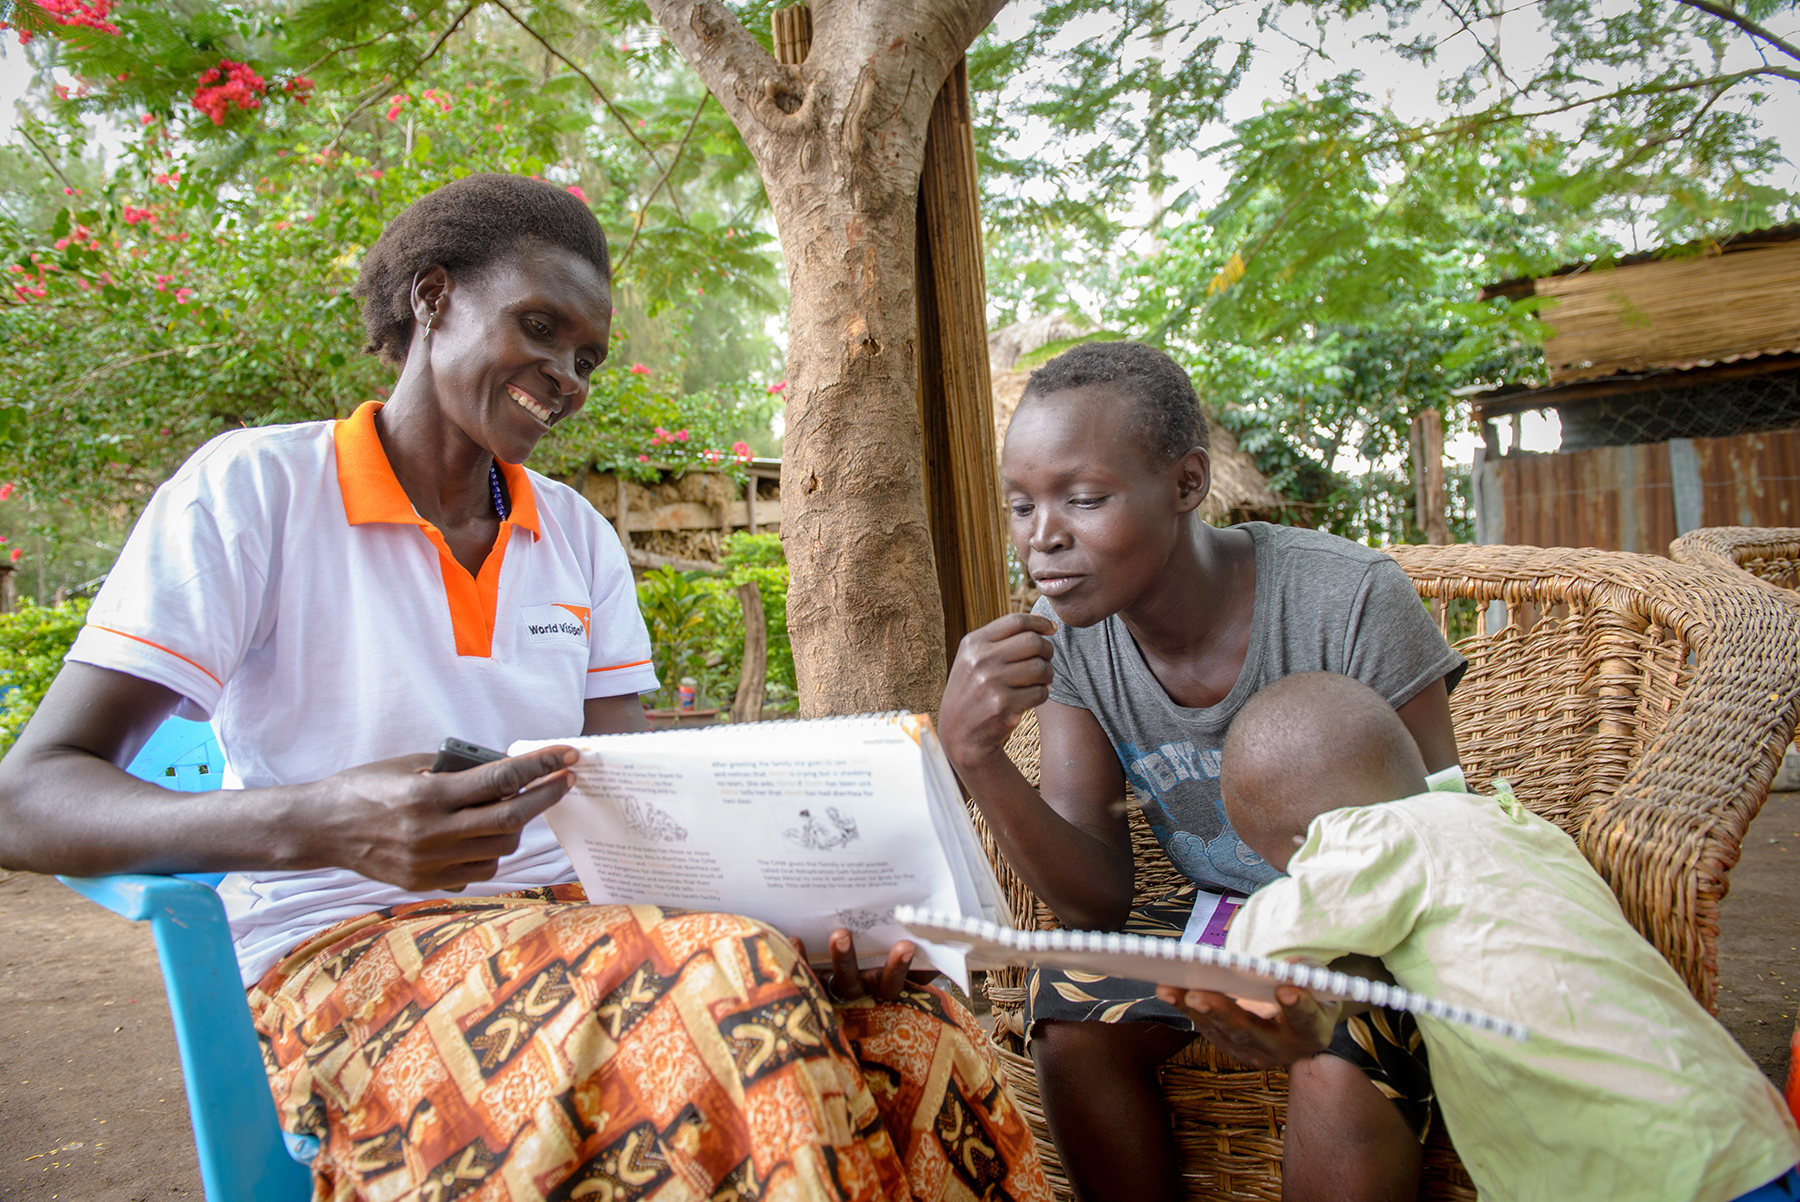 A World Vision Community Health Worker meets with a family in Africa